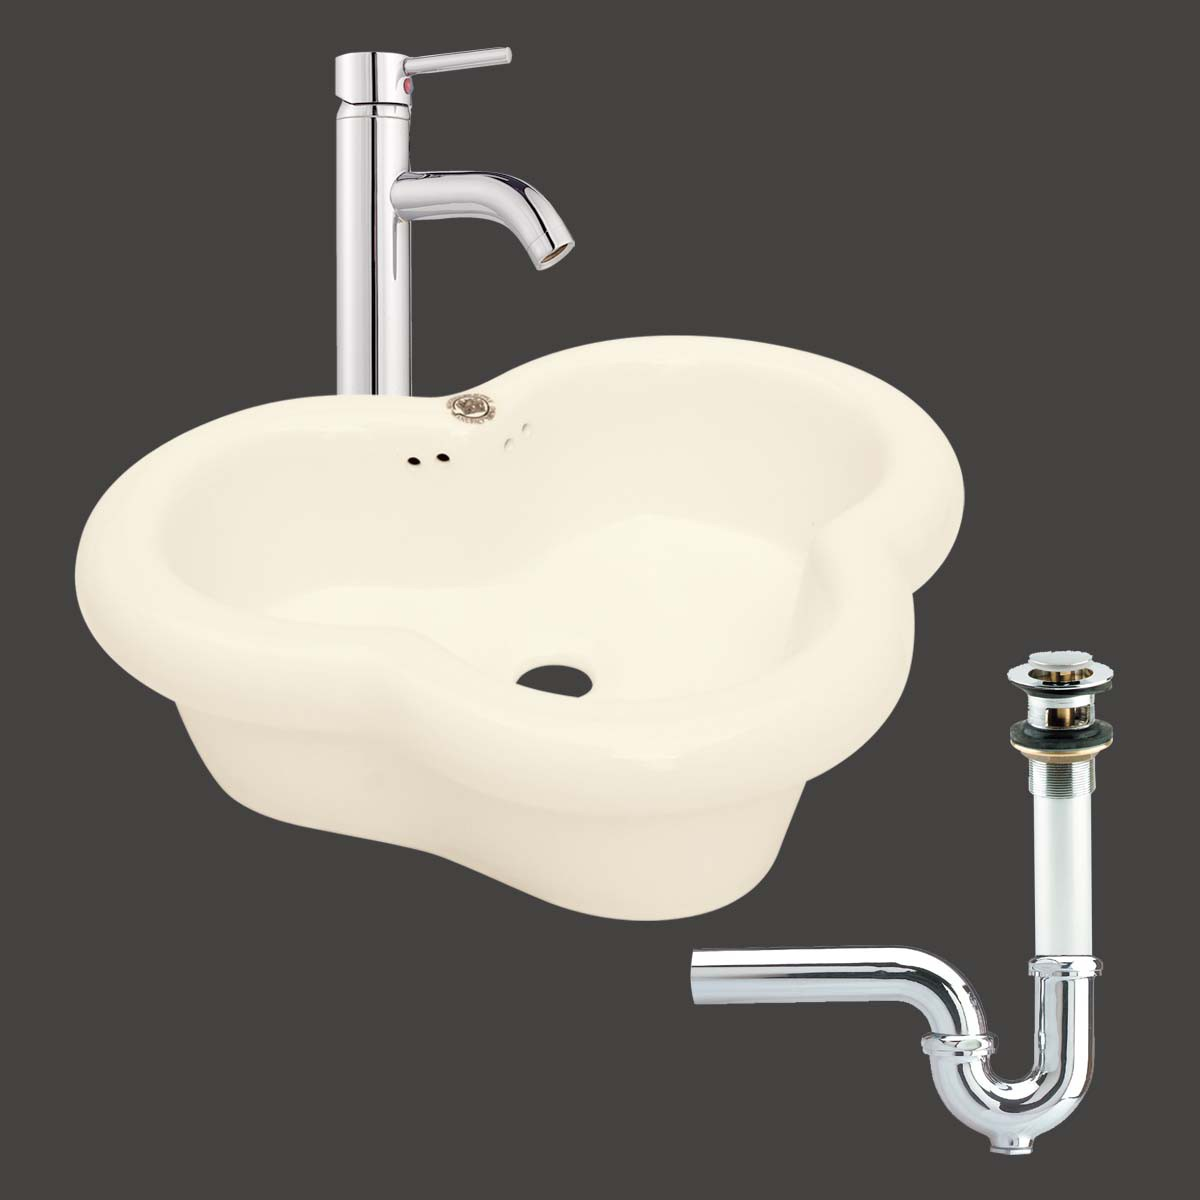 Bathroom Sink Trap : Bathroom Vessel Sink Bone Single Hole Faucet/Drain/P-Trap